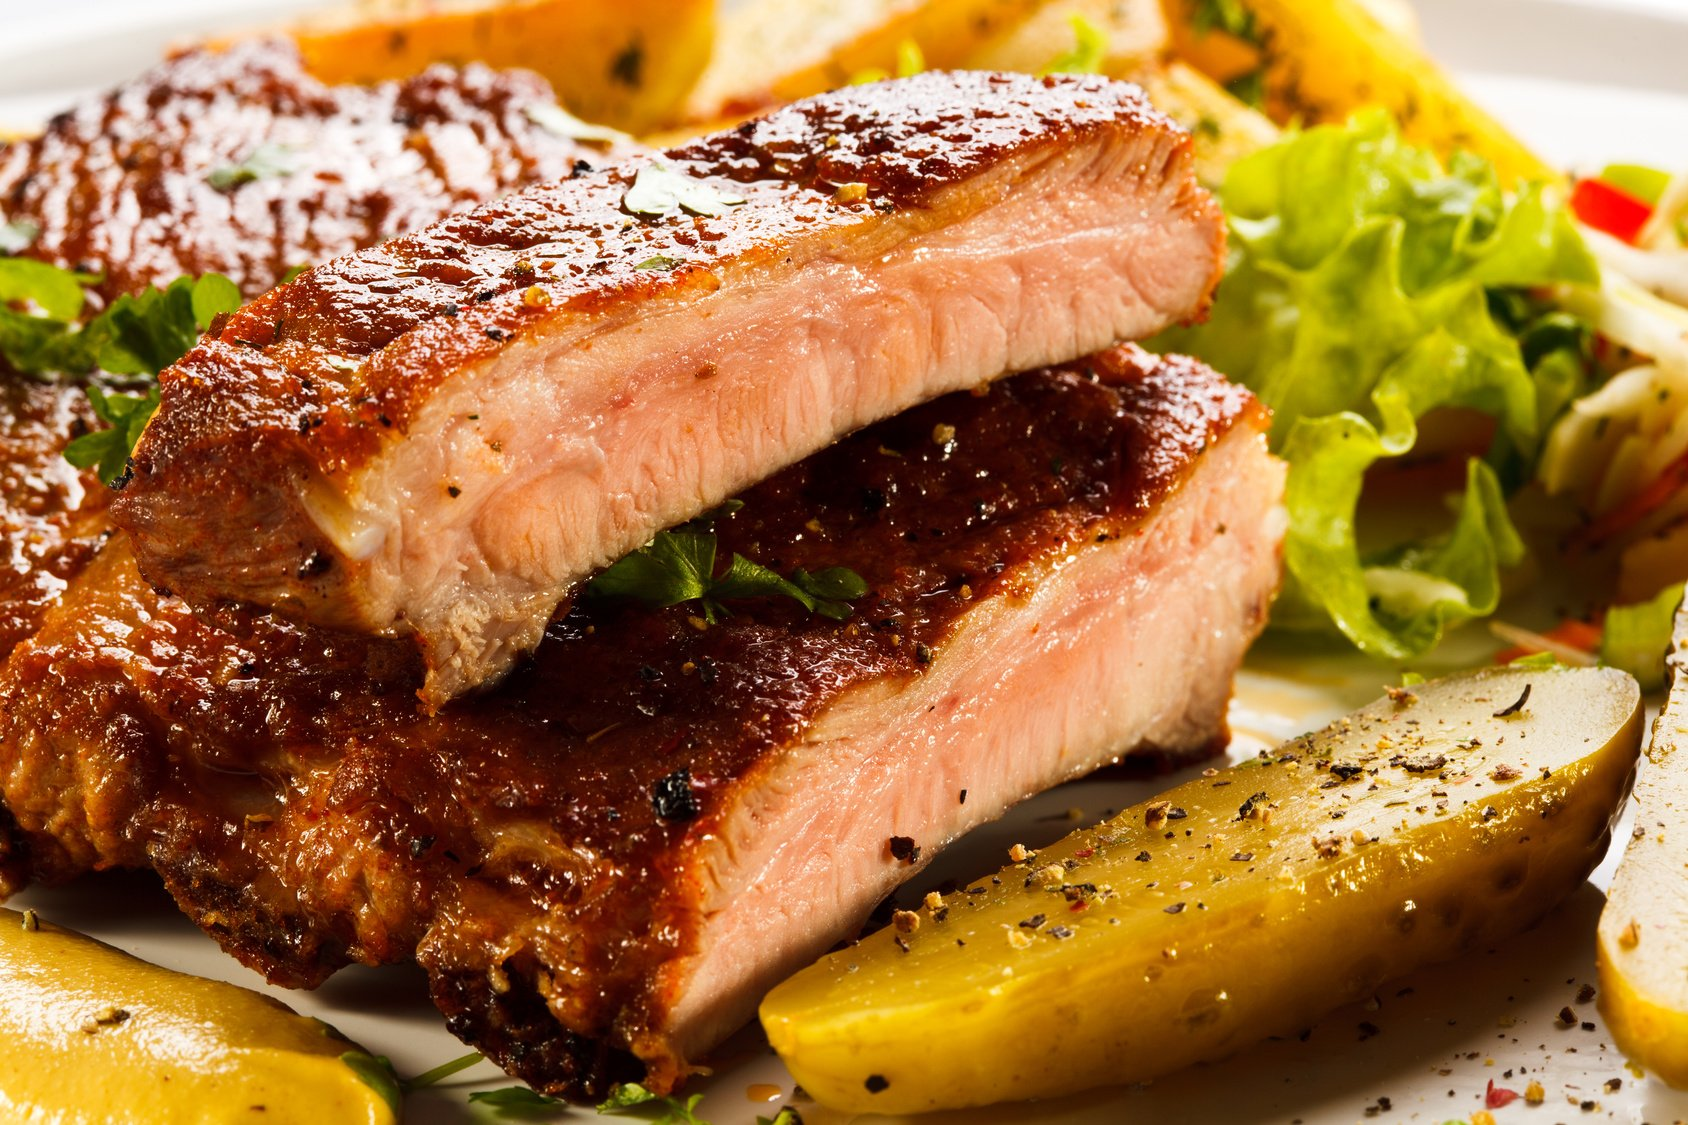 Recipe: Slow Cooked BBQ Ribs